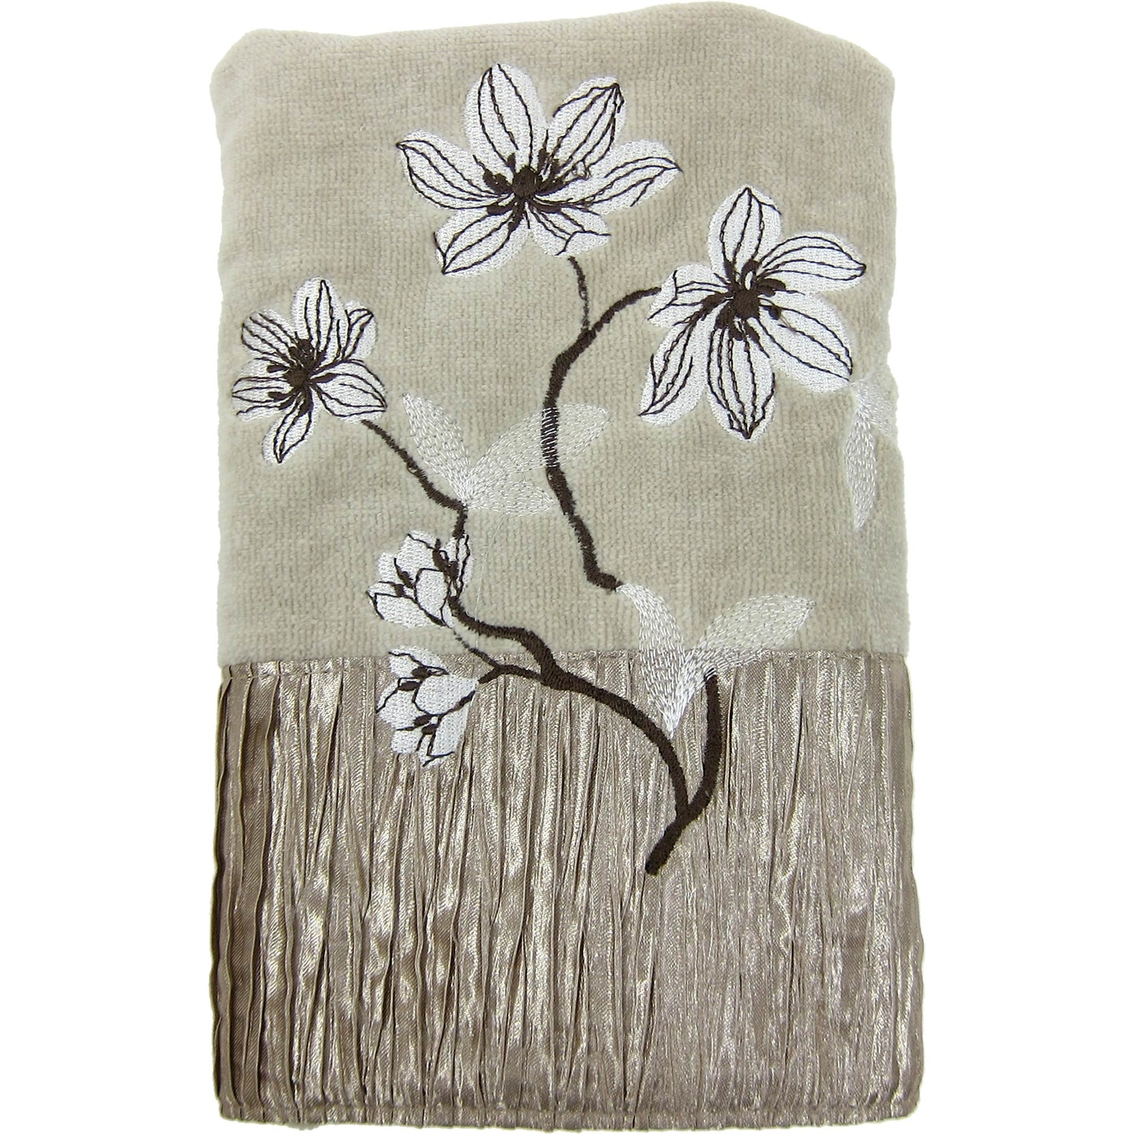 Croscill Hand Towels: Croscill Magnolia Hand Towel